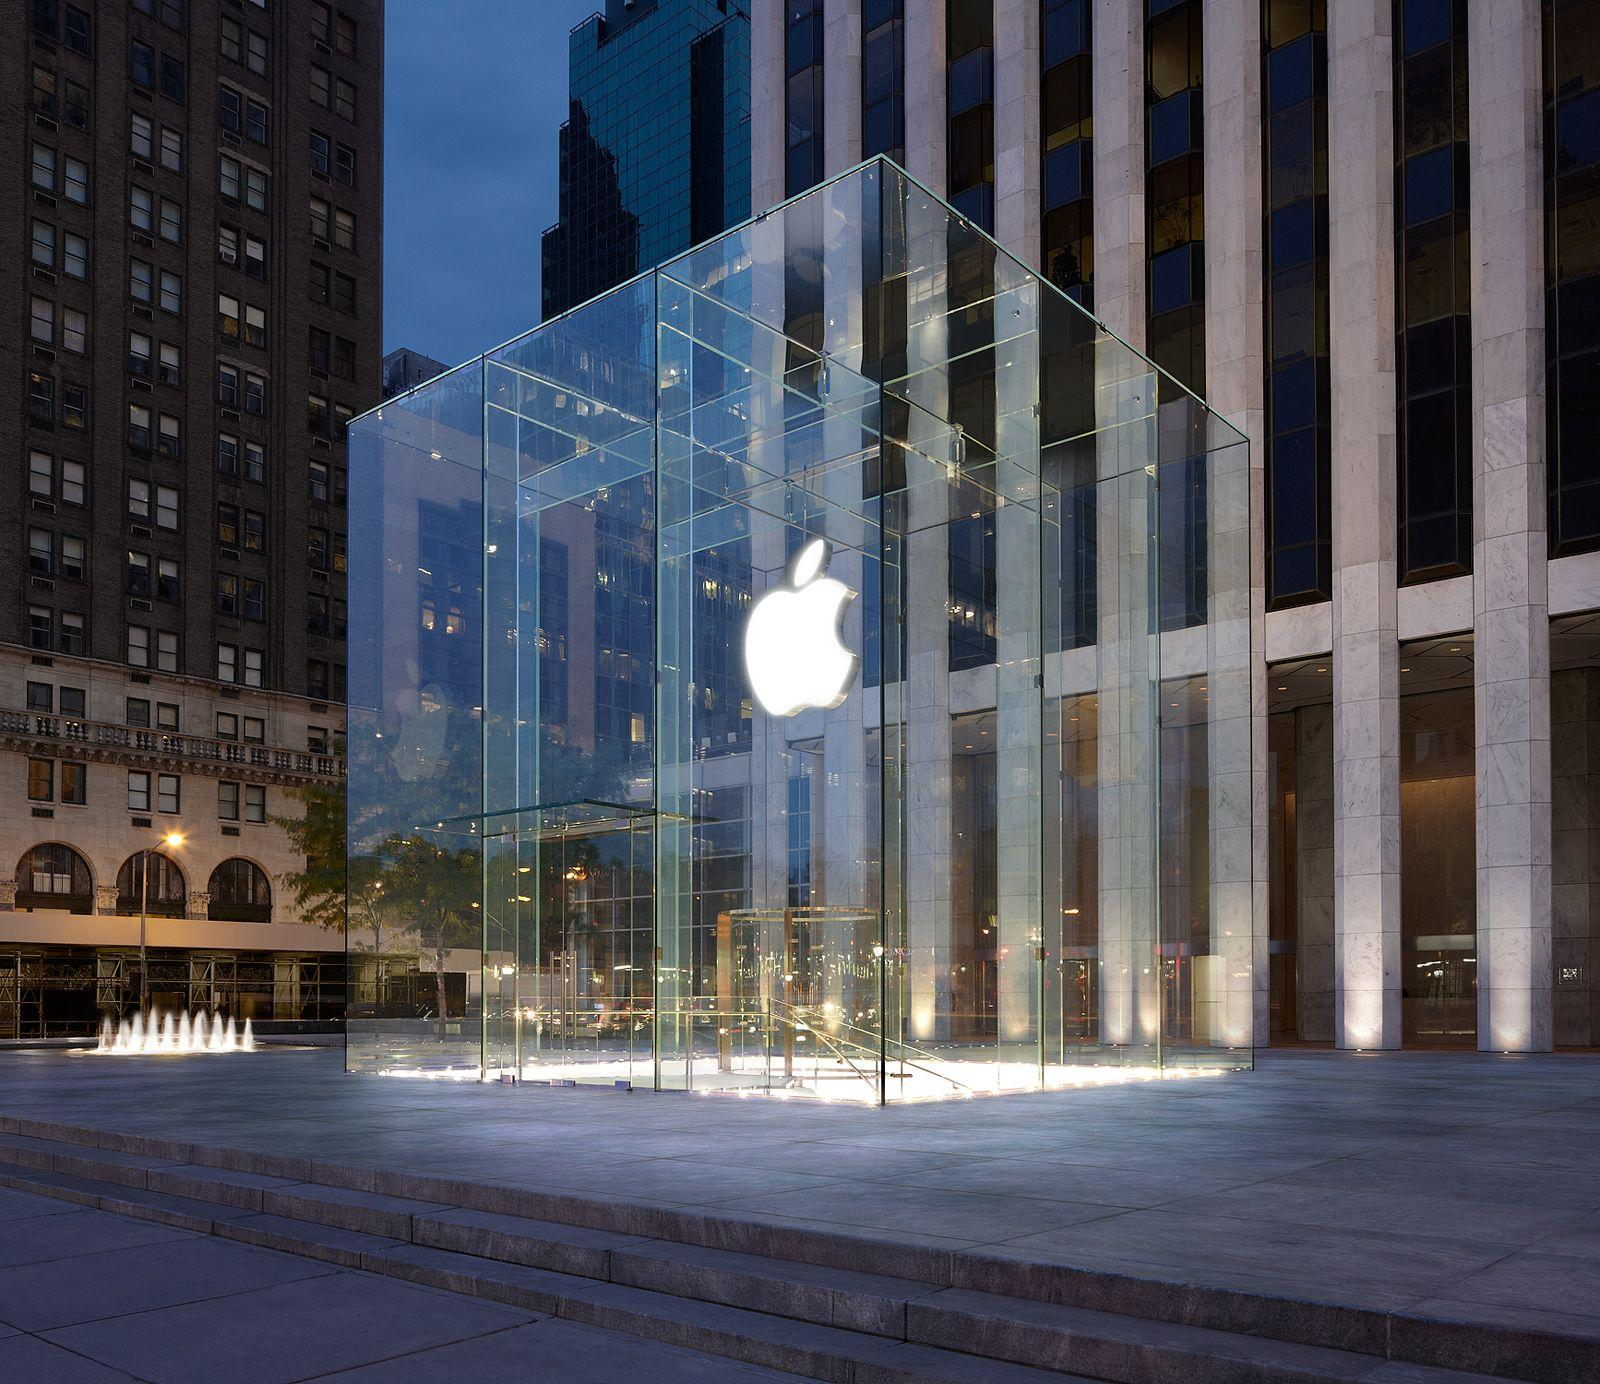 1600x1384px #699910 Apple Store New York (957.32 KB) | 04.04.2015 ...